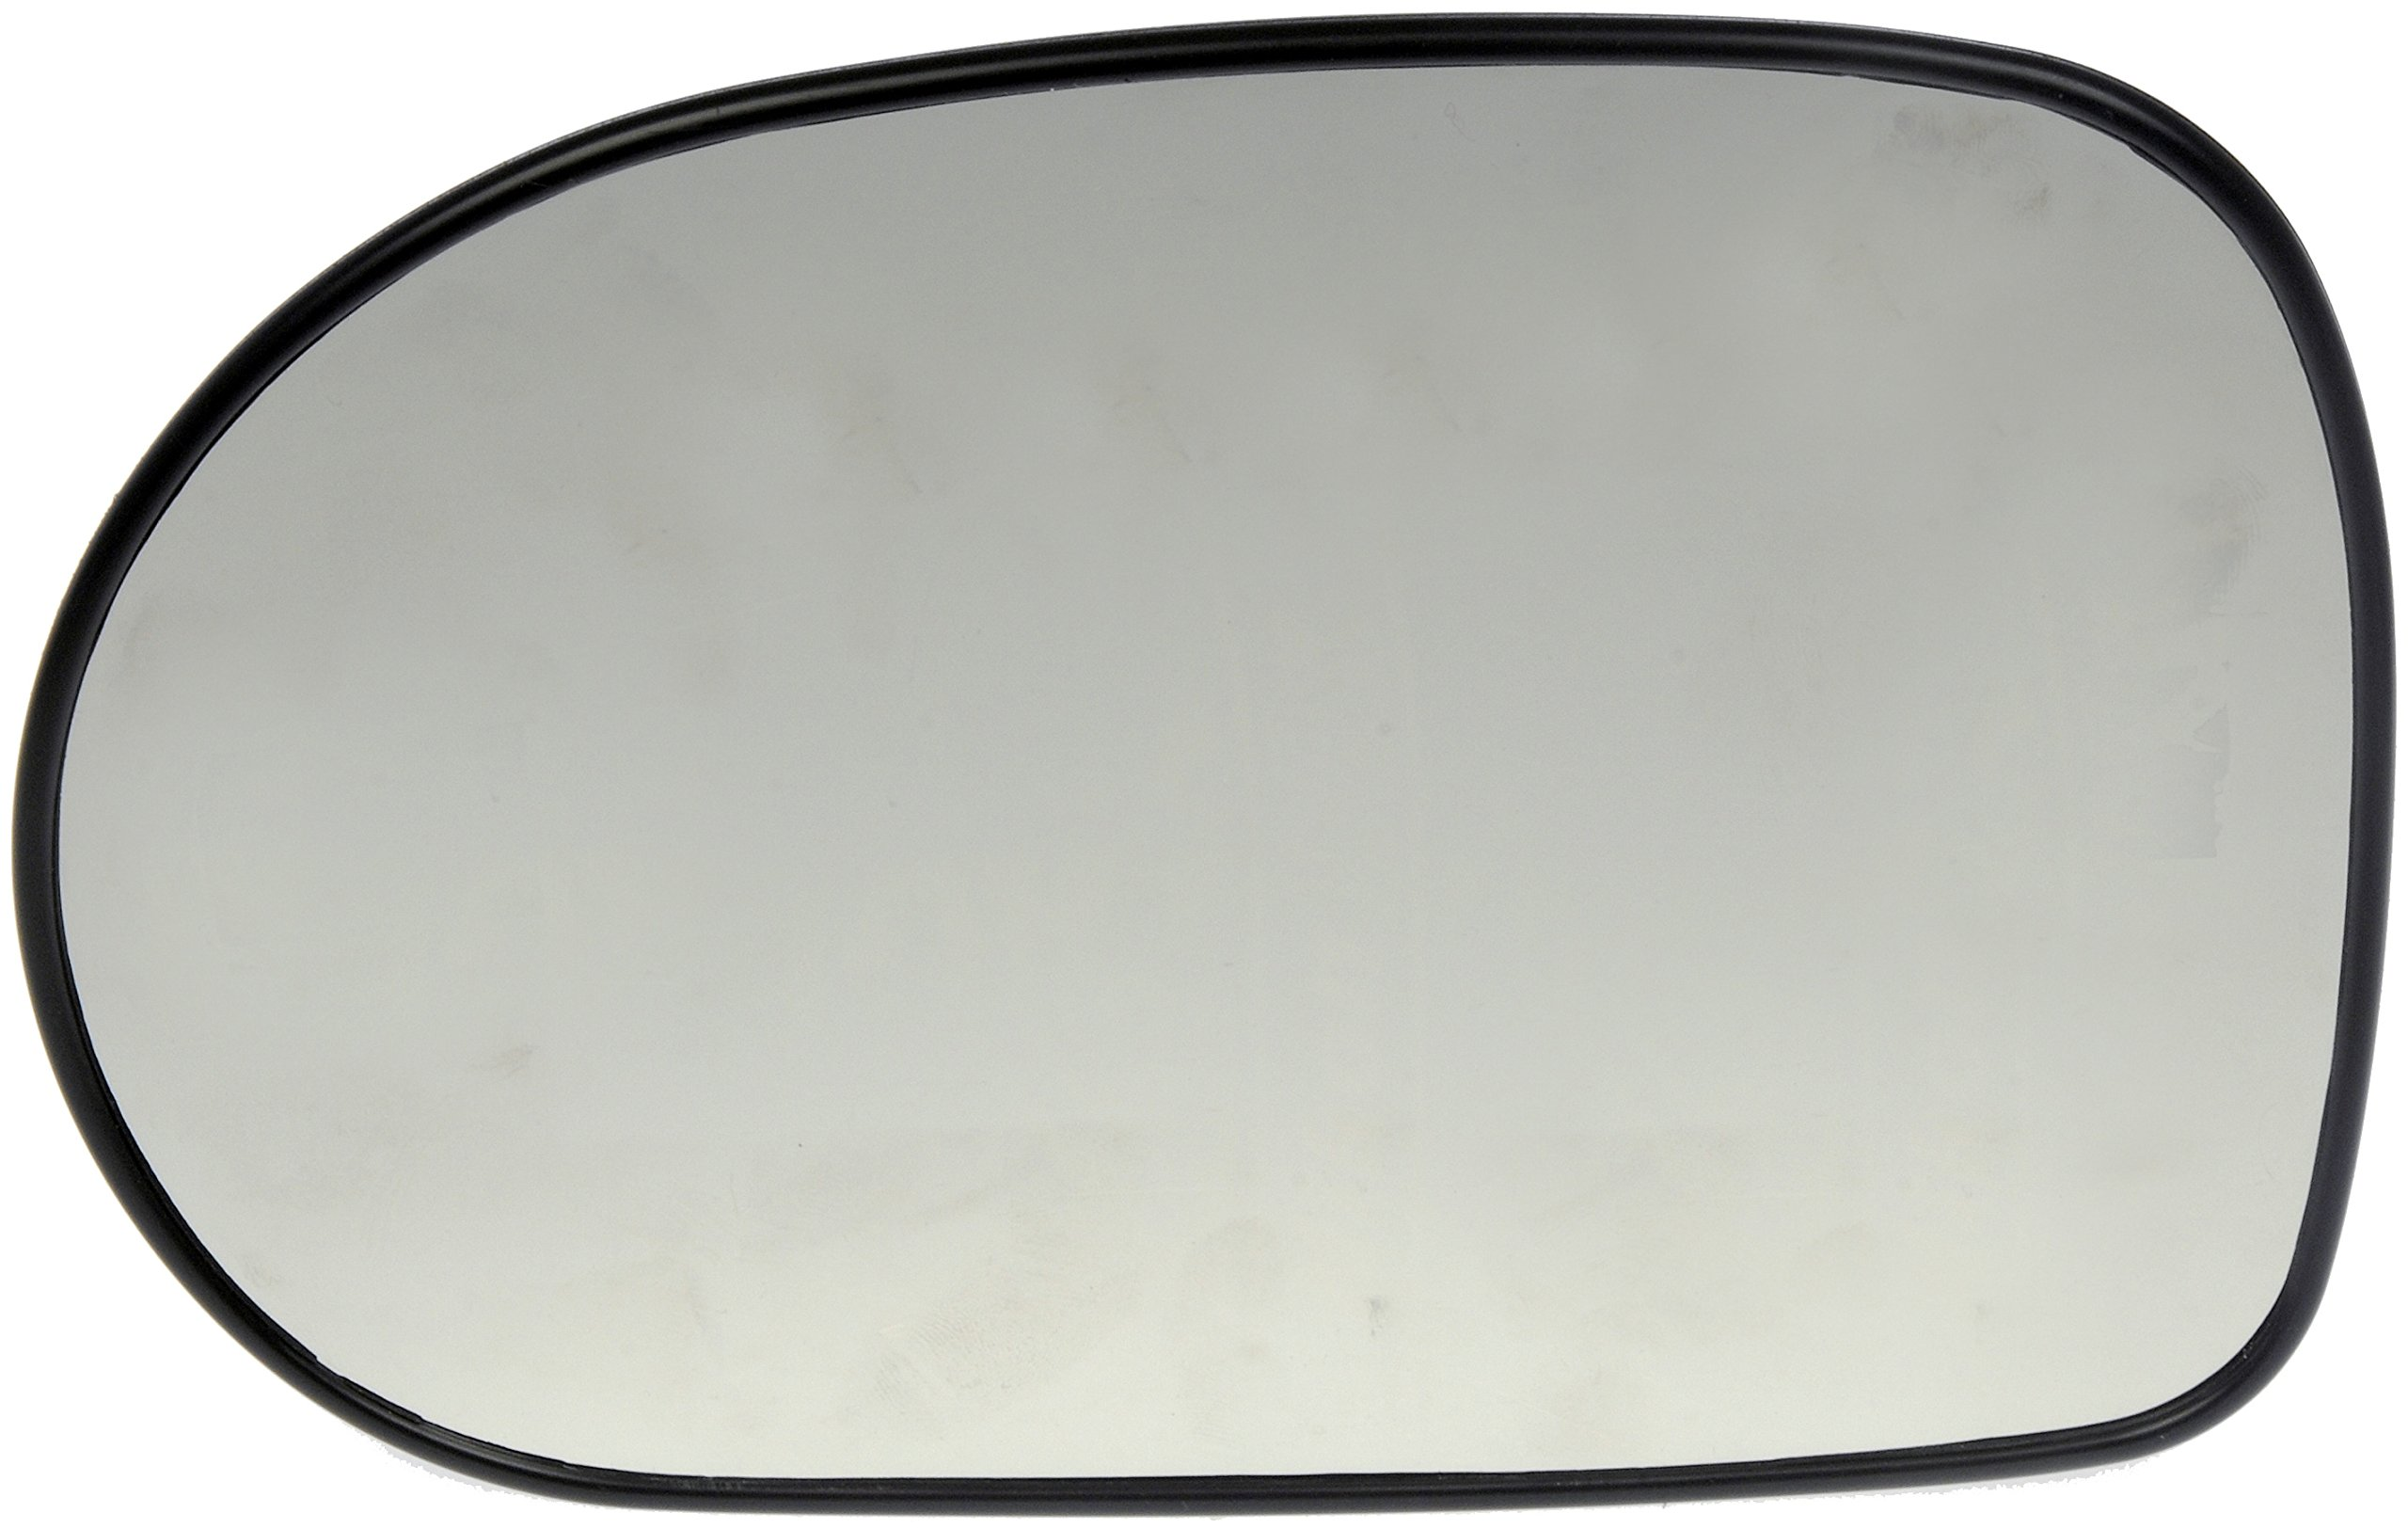 Dorman 56612 Driver Side Non-Heated Plastic Backed Mirror Glass